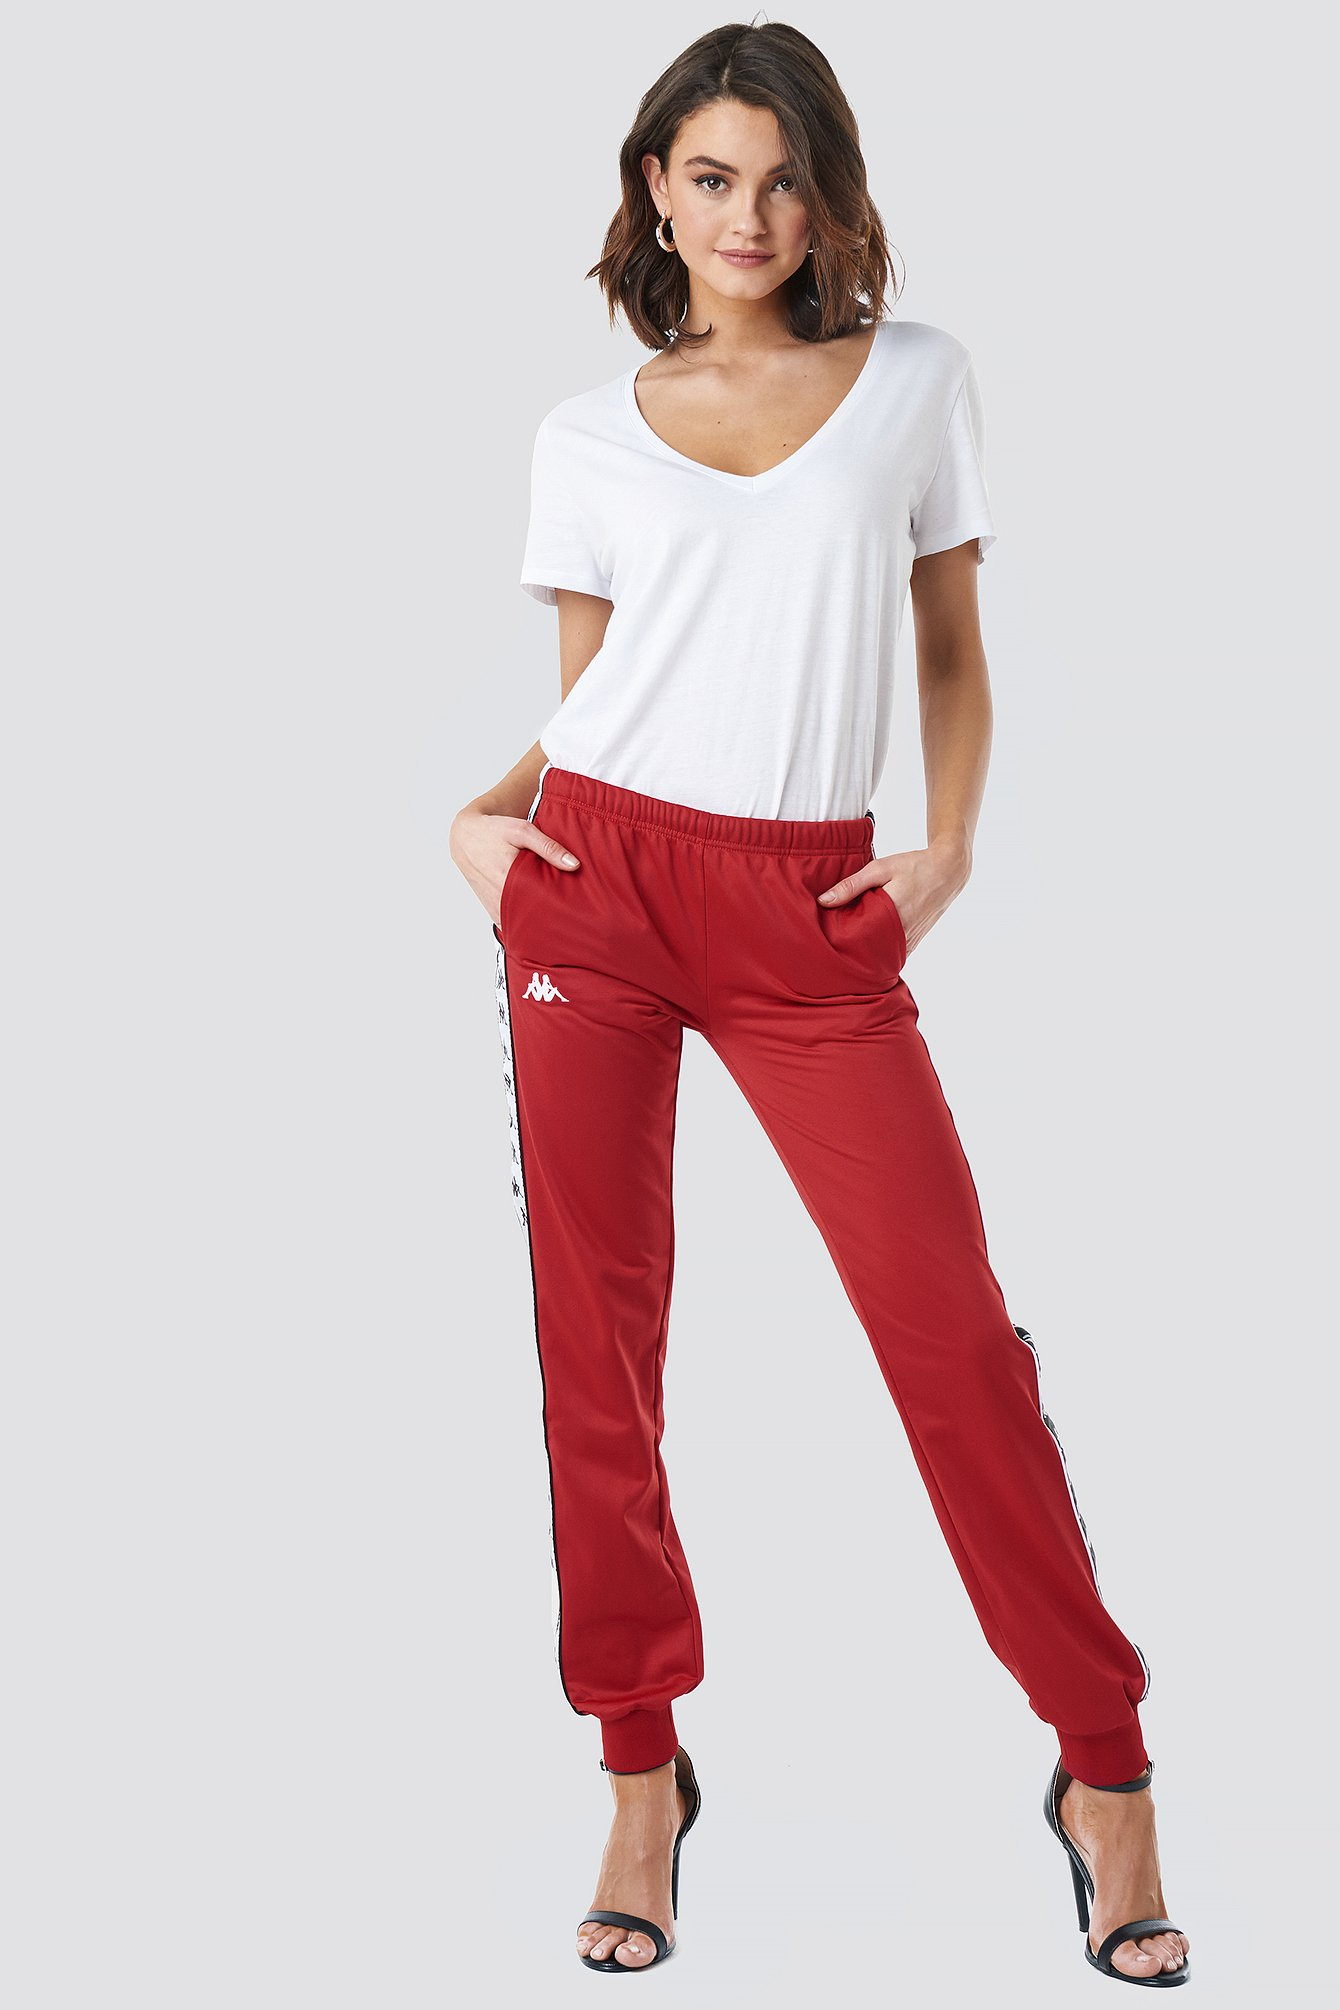 kappa -  Wrastoria Banda Pants - Red